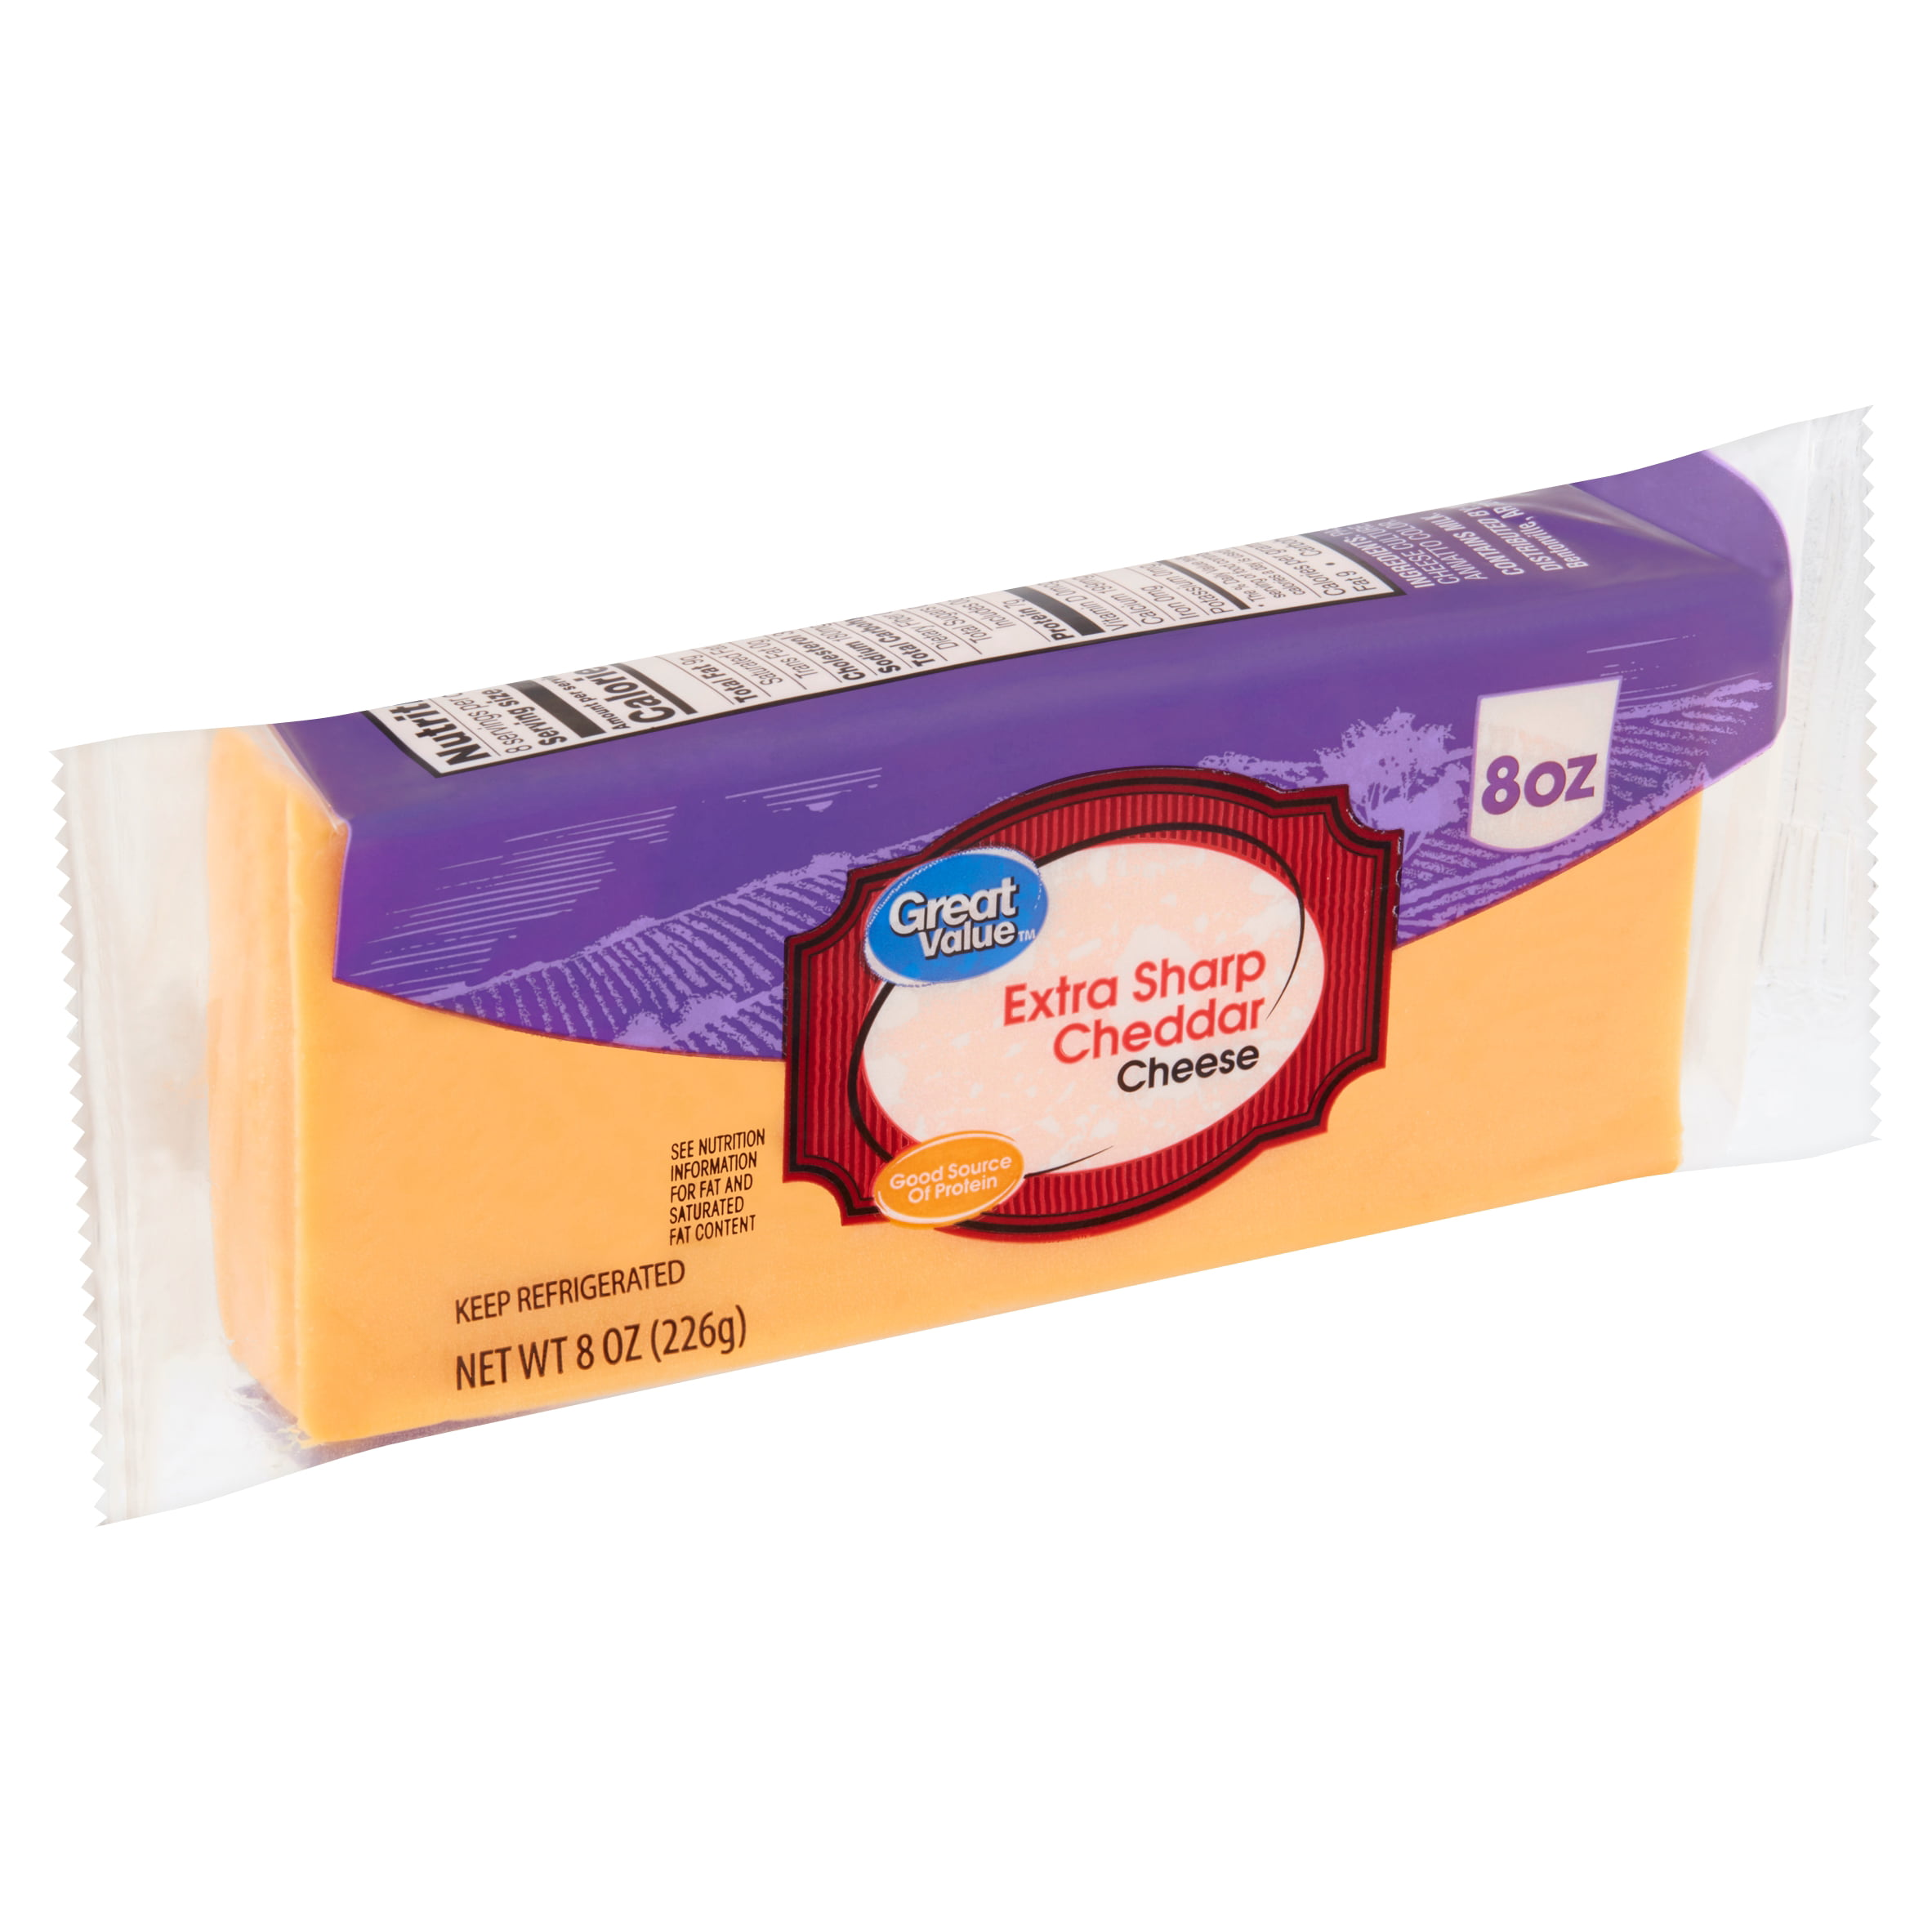 Great Value Extra Sharp Cheddar Cheese